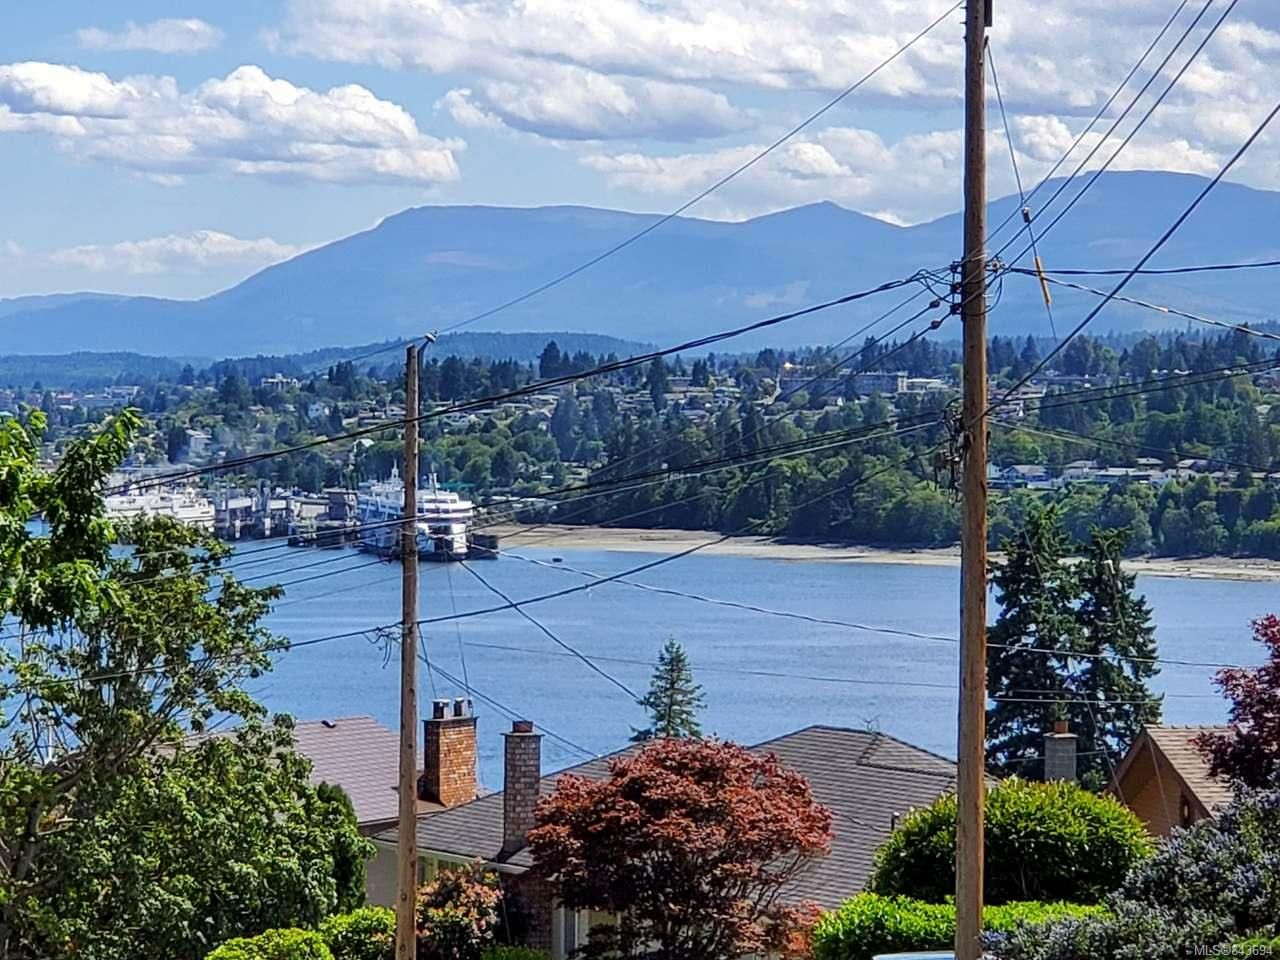 Main Photo: 270 Prince John Way in NANAIMO: Na Departure Bay Land for sale (Nanaimo)  : MLS®# 843694